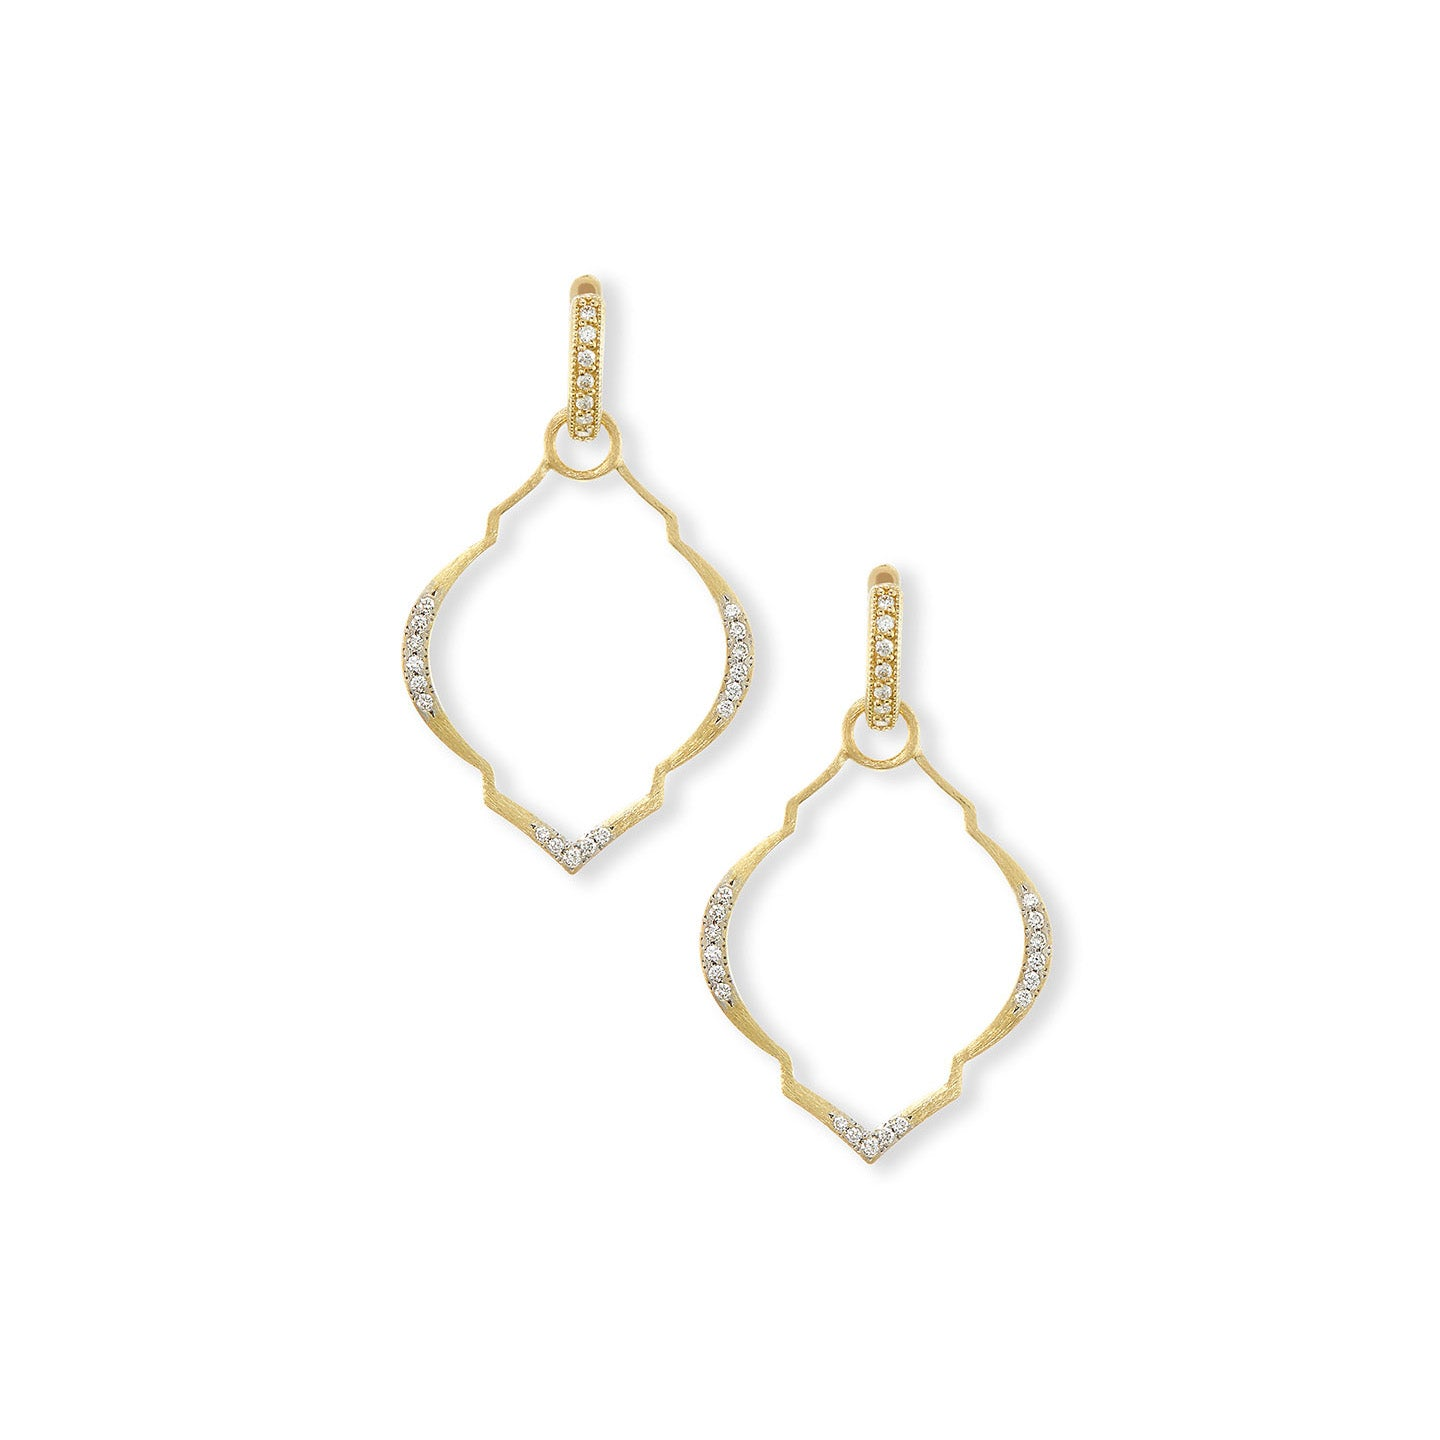 Jude Frances Casablanca 18K Yellow Gold Moroccan Earring Charm Frames with White Diamonds